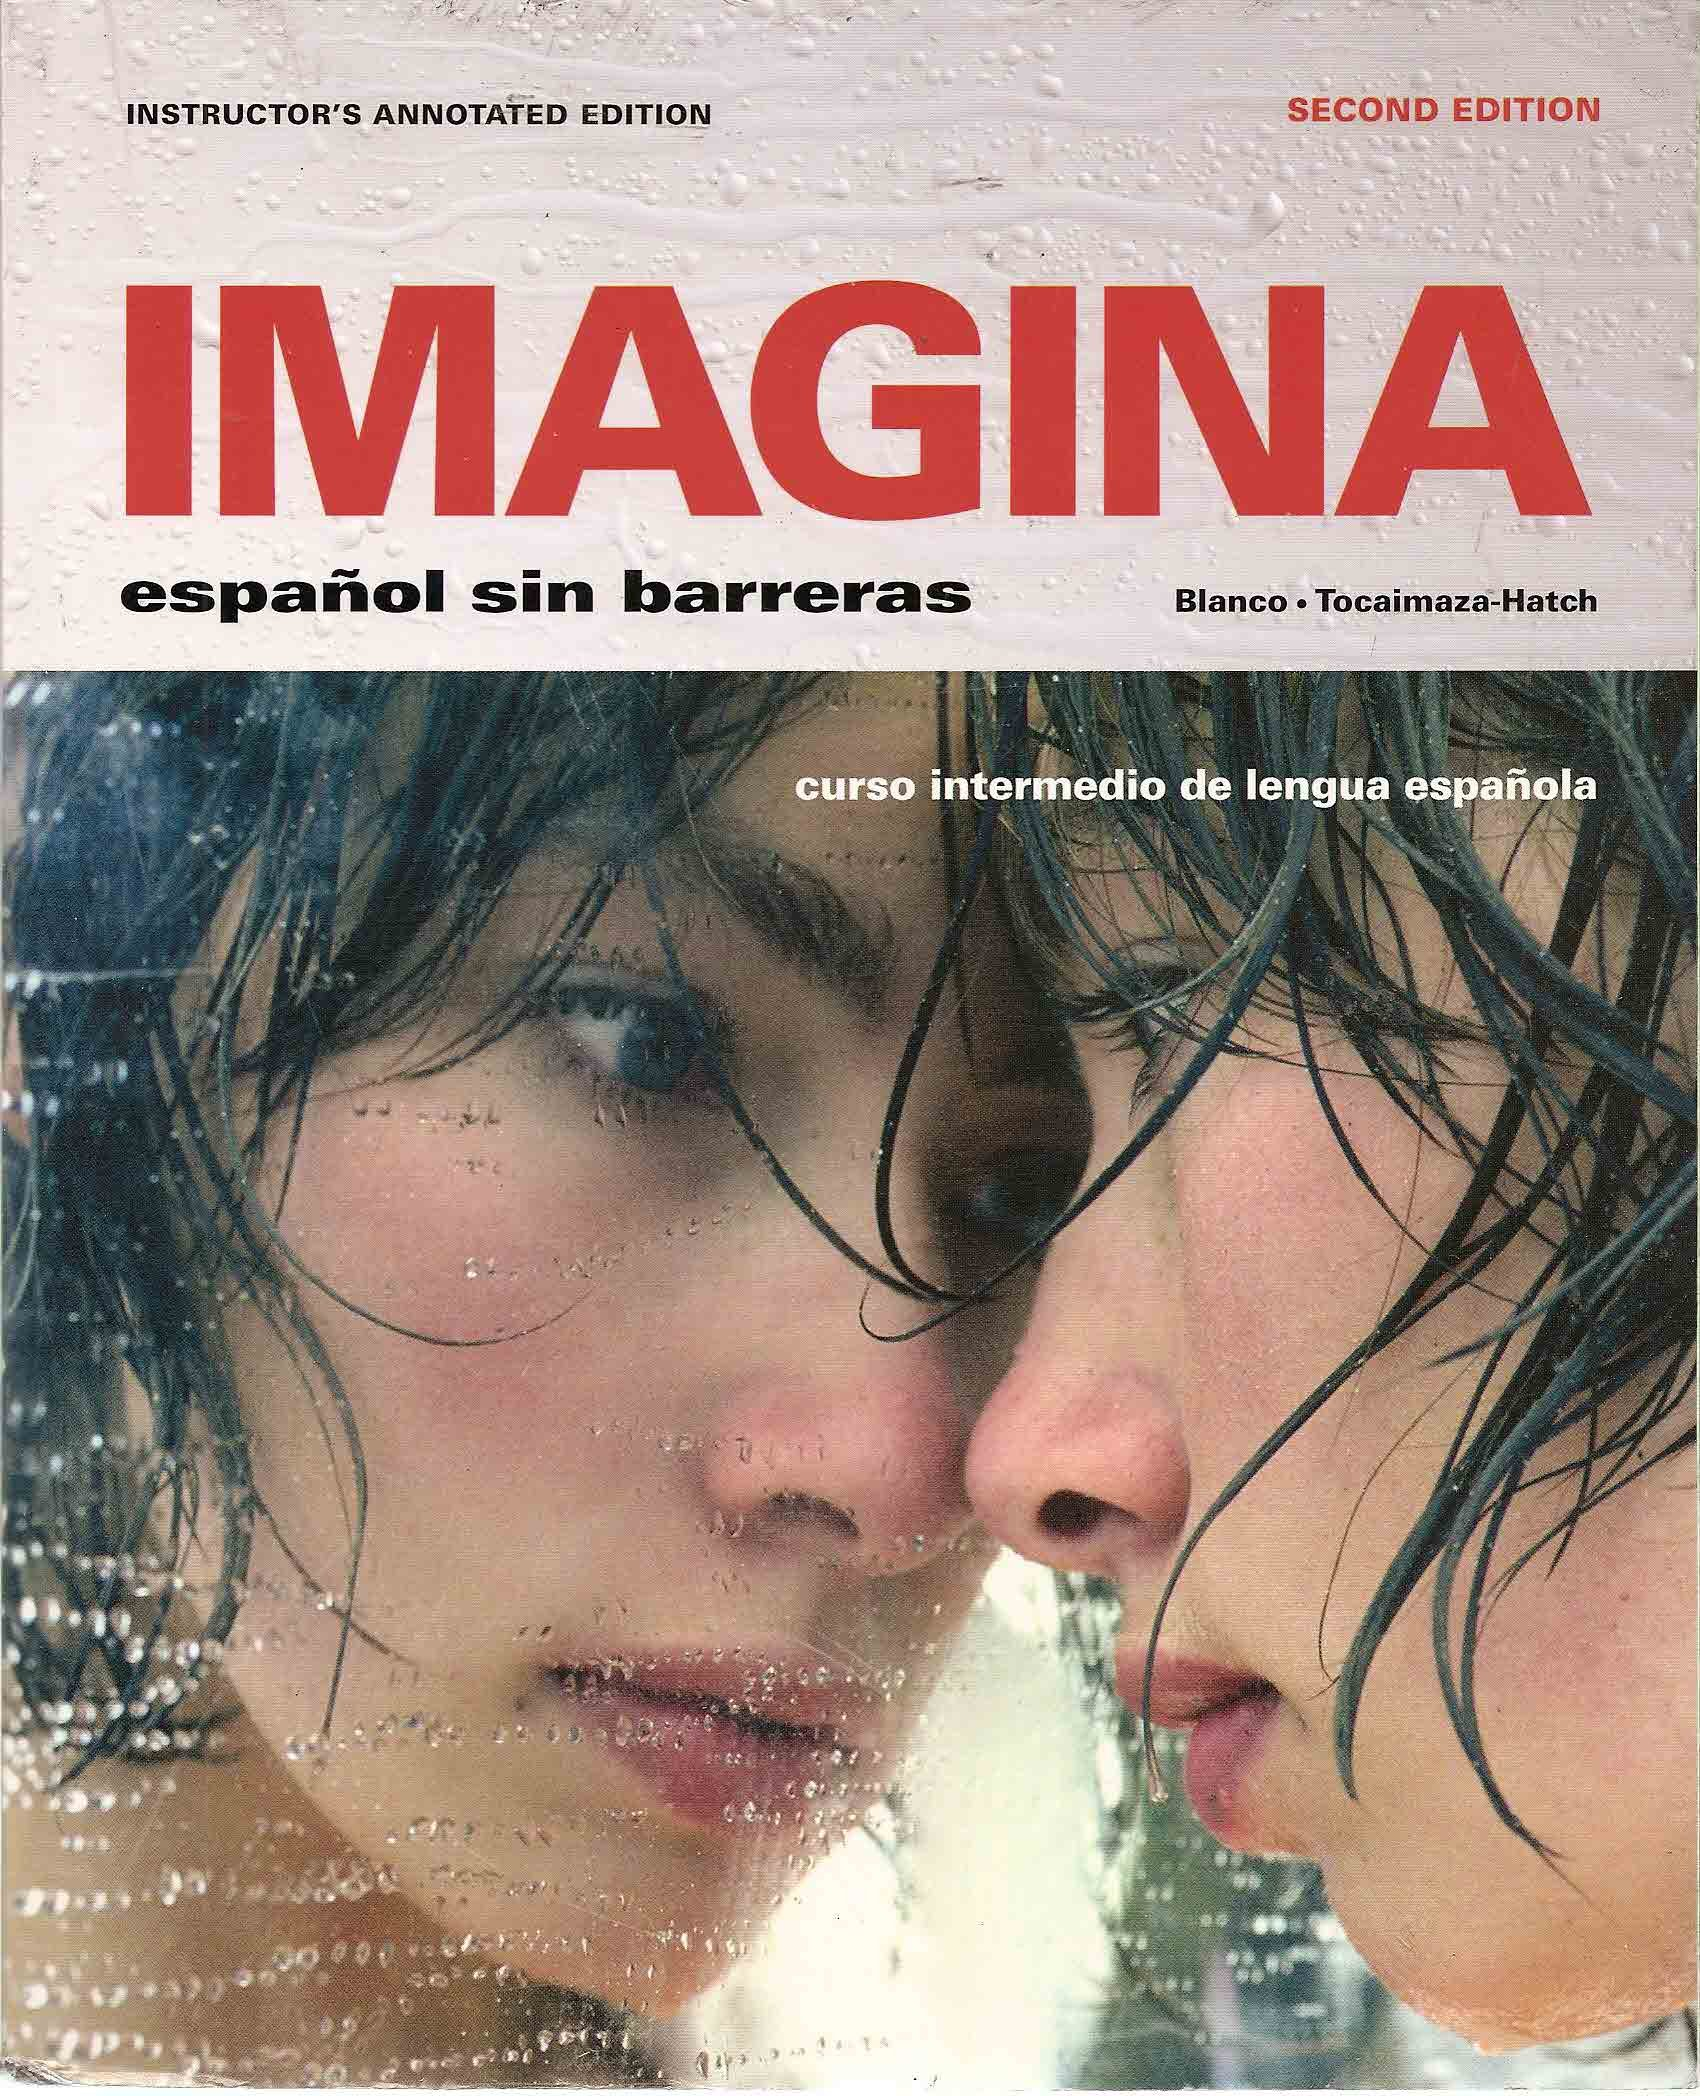 Imagina espanol sin barreras instructors edition blanco imagina espanol sin barreras instructors edition blanco tocaimaza hatch 9781605760926 amazon books fandeluxe Image collections